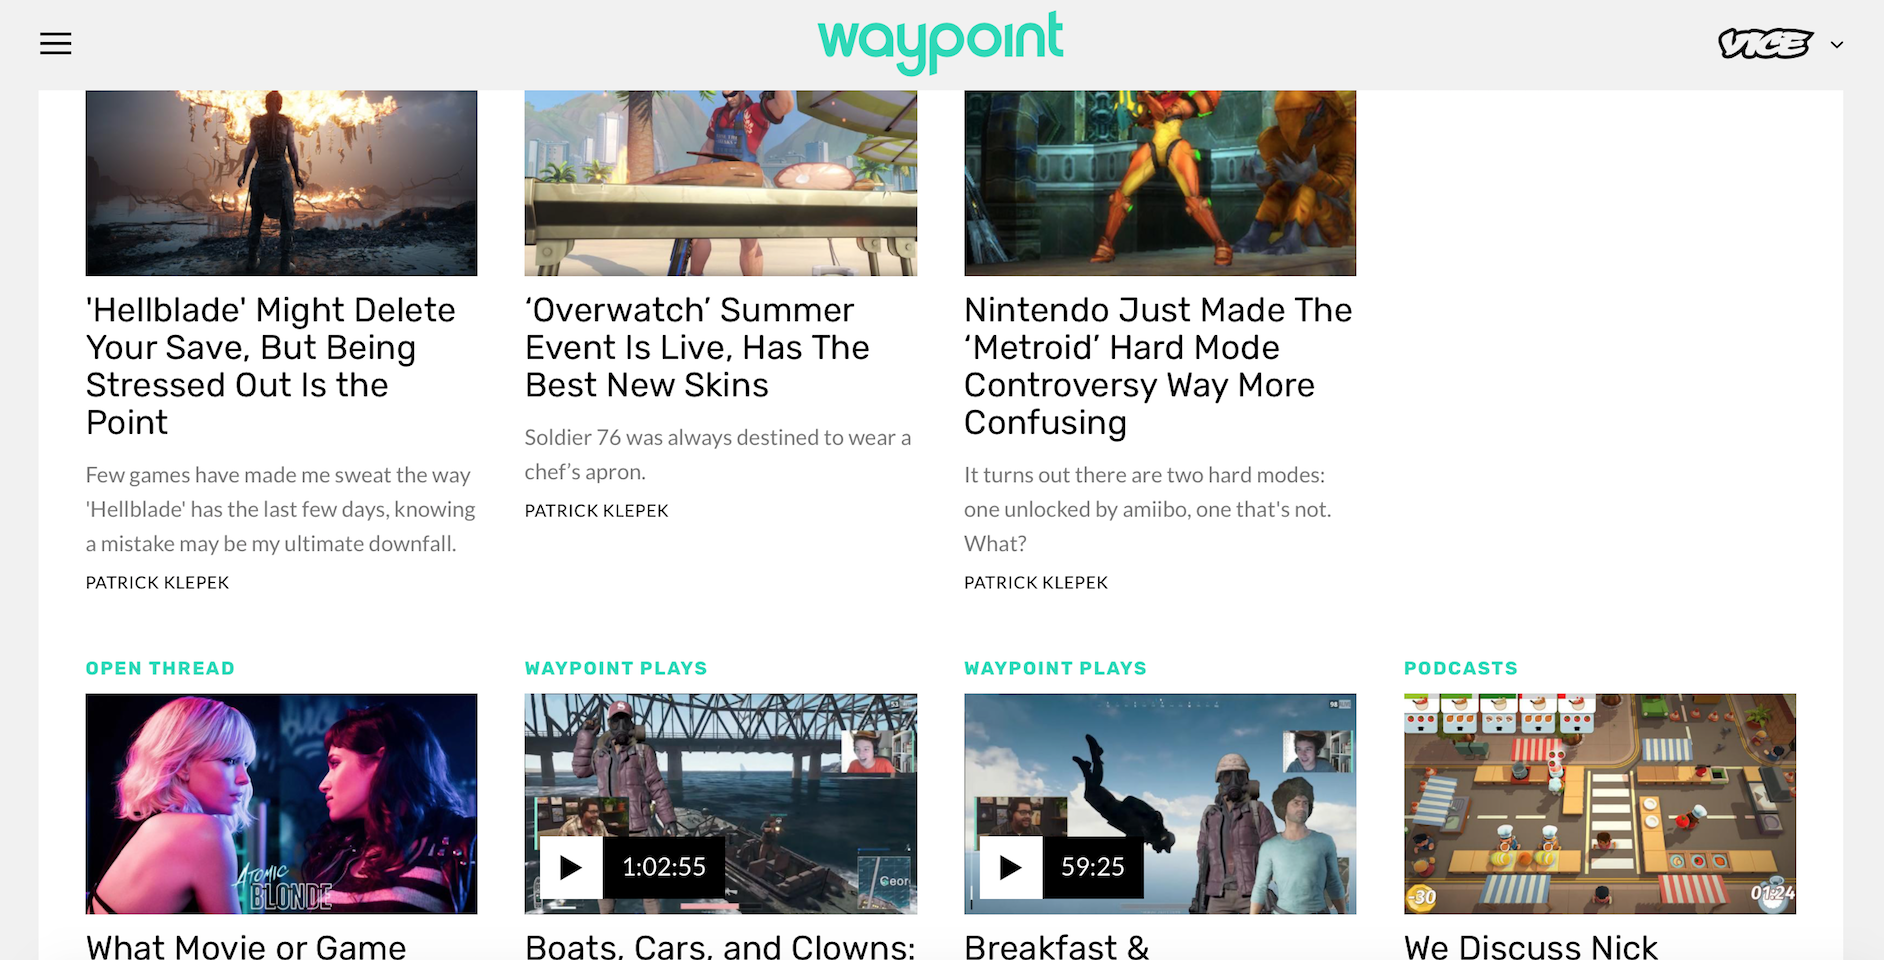 Waypoint: Vice's Gaming and eSports Site (Photo: Vice)